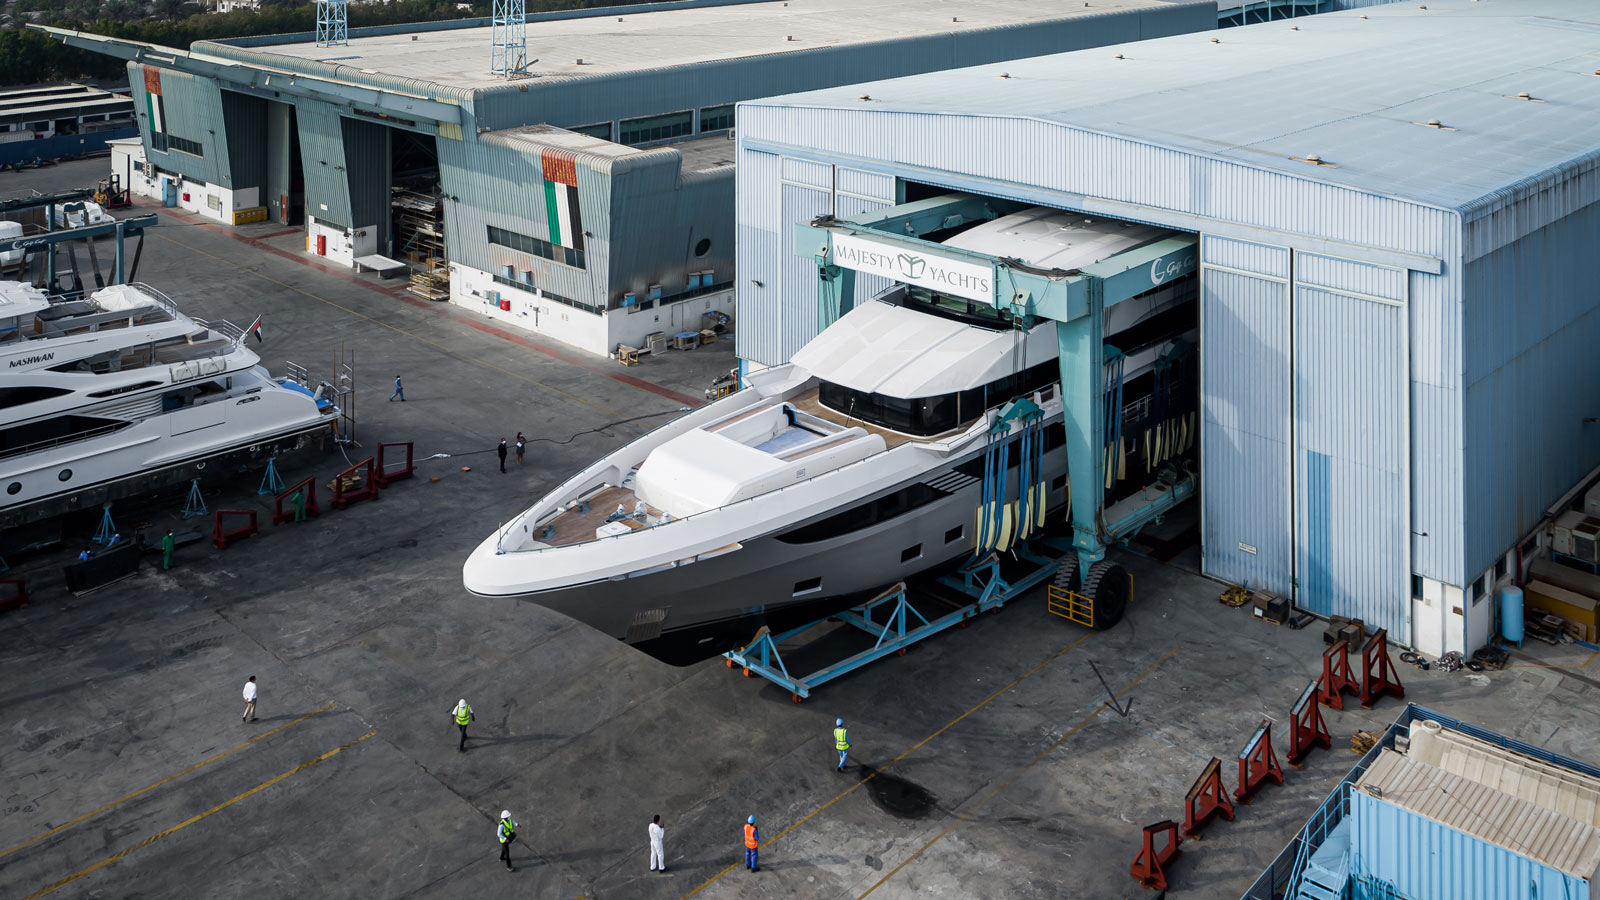 the-majesty-175-flagship-yacht-will-be-launched-by-gulf-craft-in-early-summer-2019